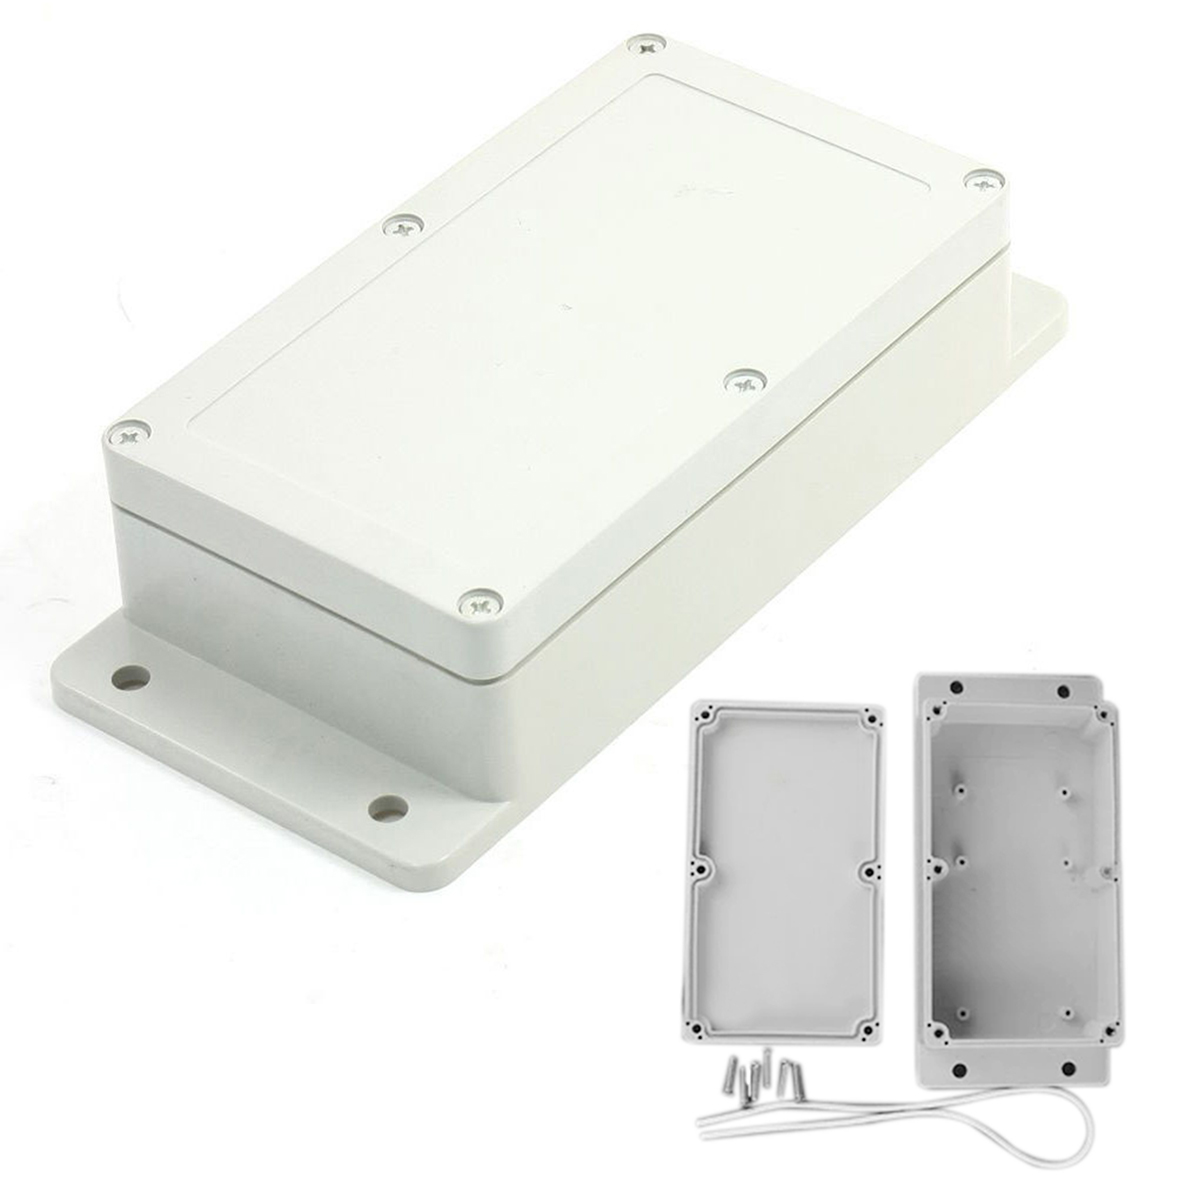 Waterproof Power Junction Box White Plastic Enclosure Case 158mmx90mmx46mm For Electronic Project Instrument 1 piece lot 83 81 56mm grey abs plastic ip65 waterproof enclosure pvc junction box electronic project instrument case